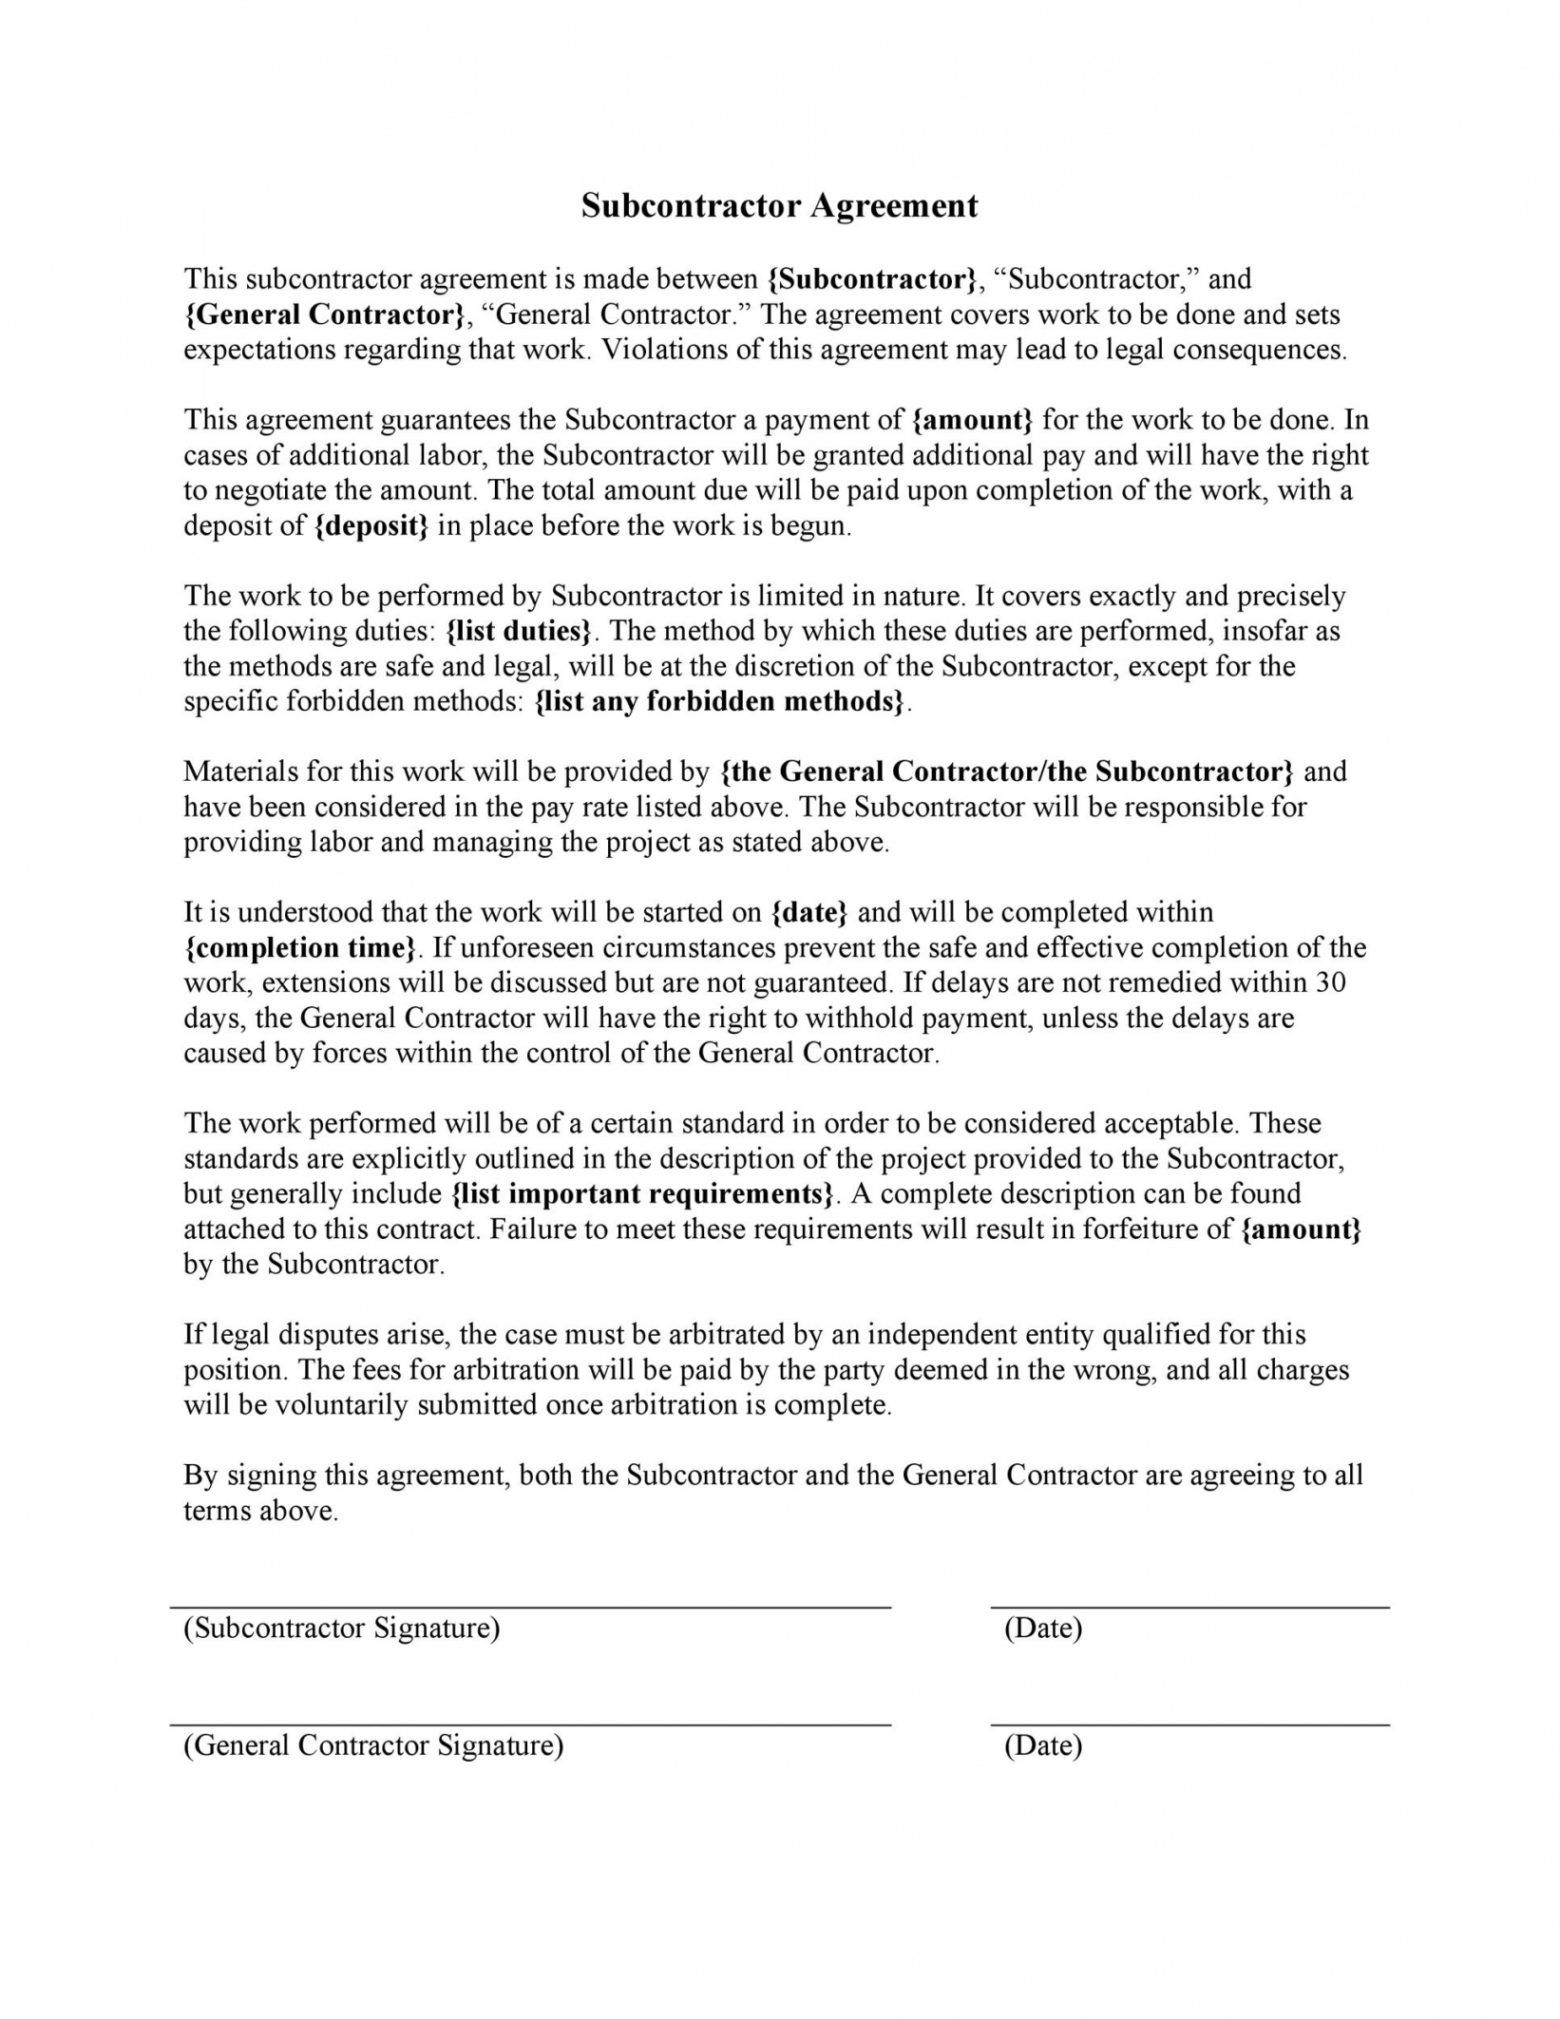 printable need a subcontractor agreement? 39 free templates here medical independent contractor agreement template word